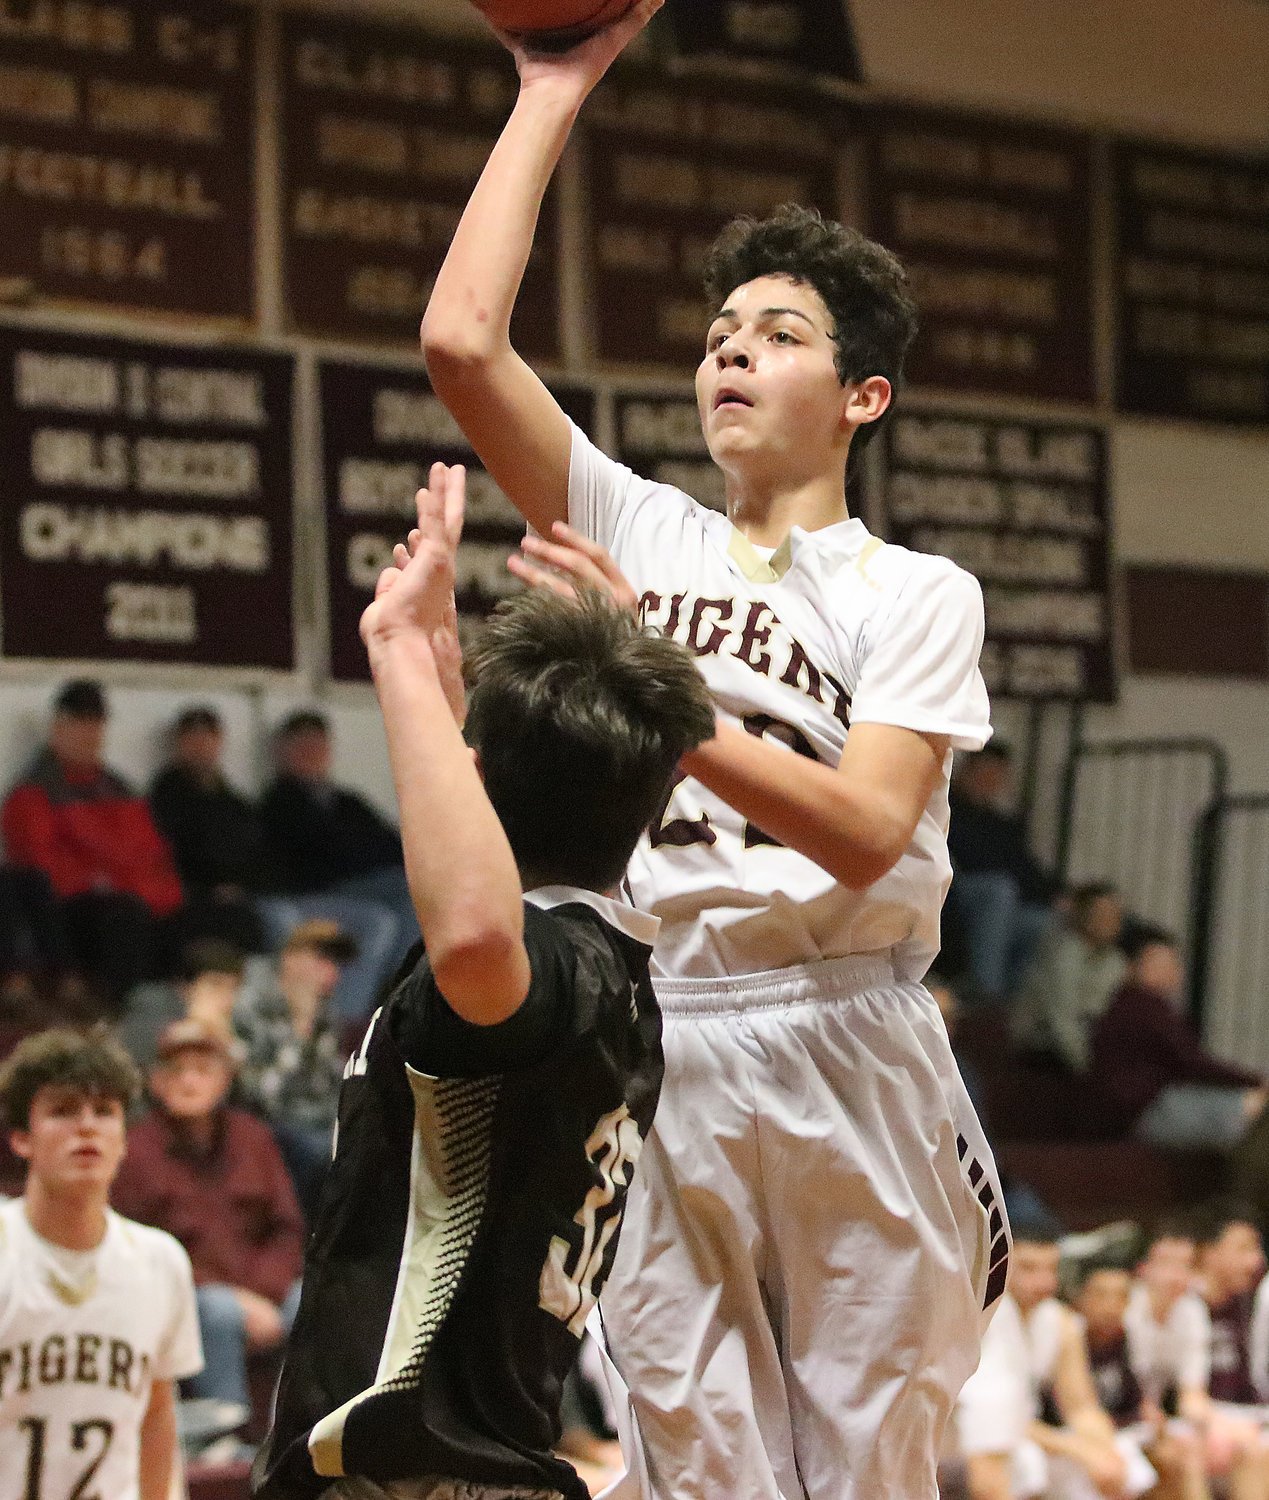 Tigers forward Nate Sama takes a jumper from inside the paint.